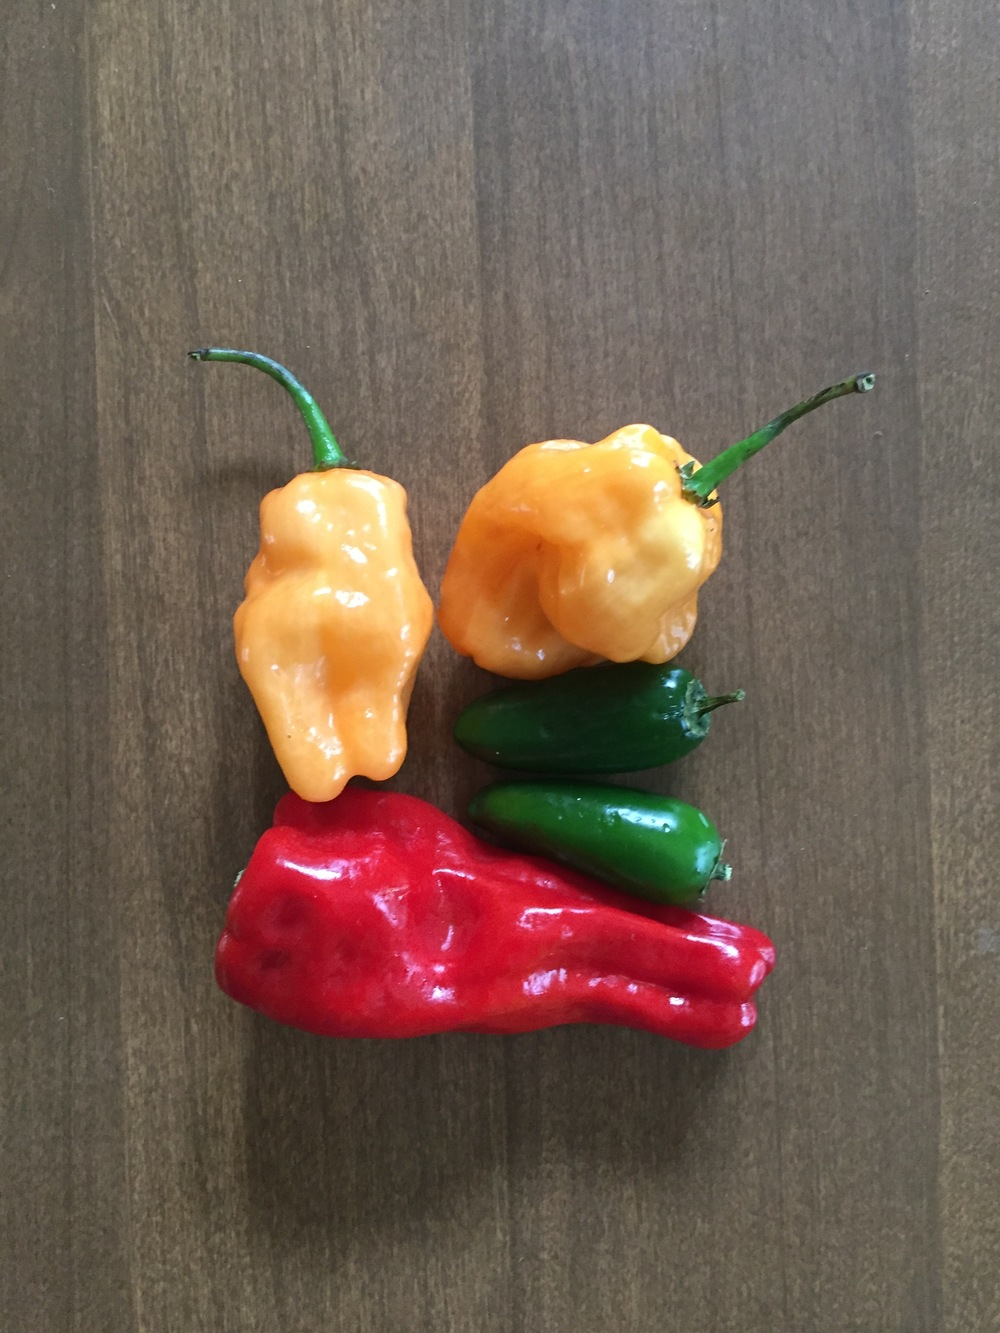 Chile Peppers (3)